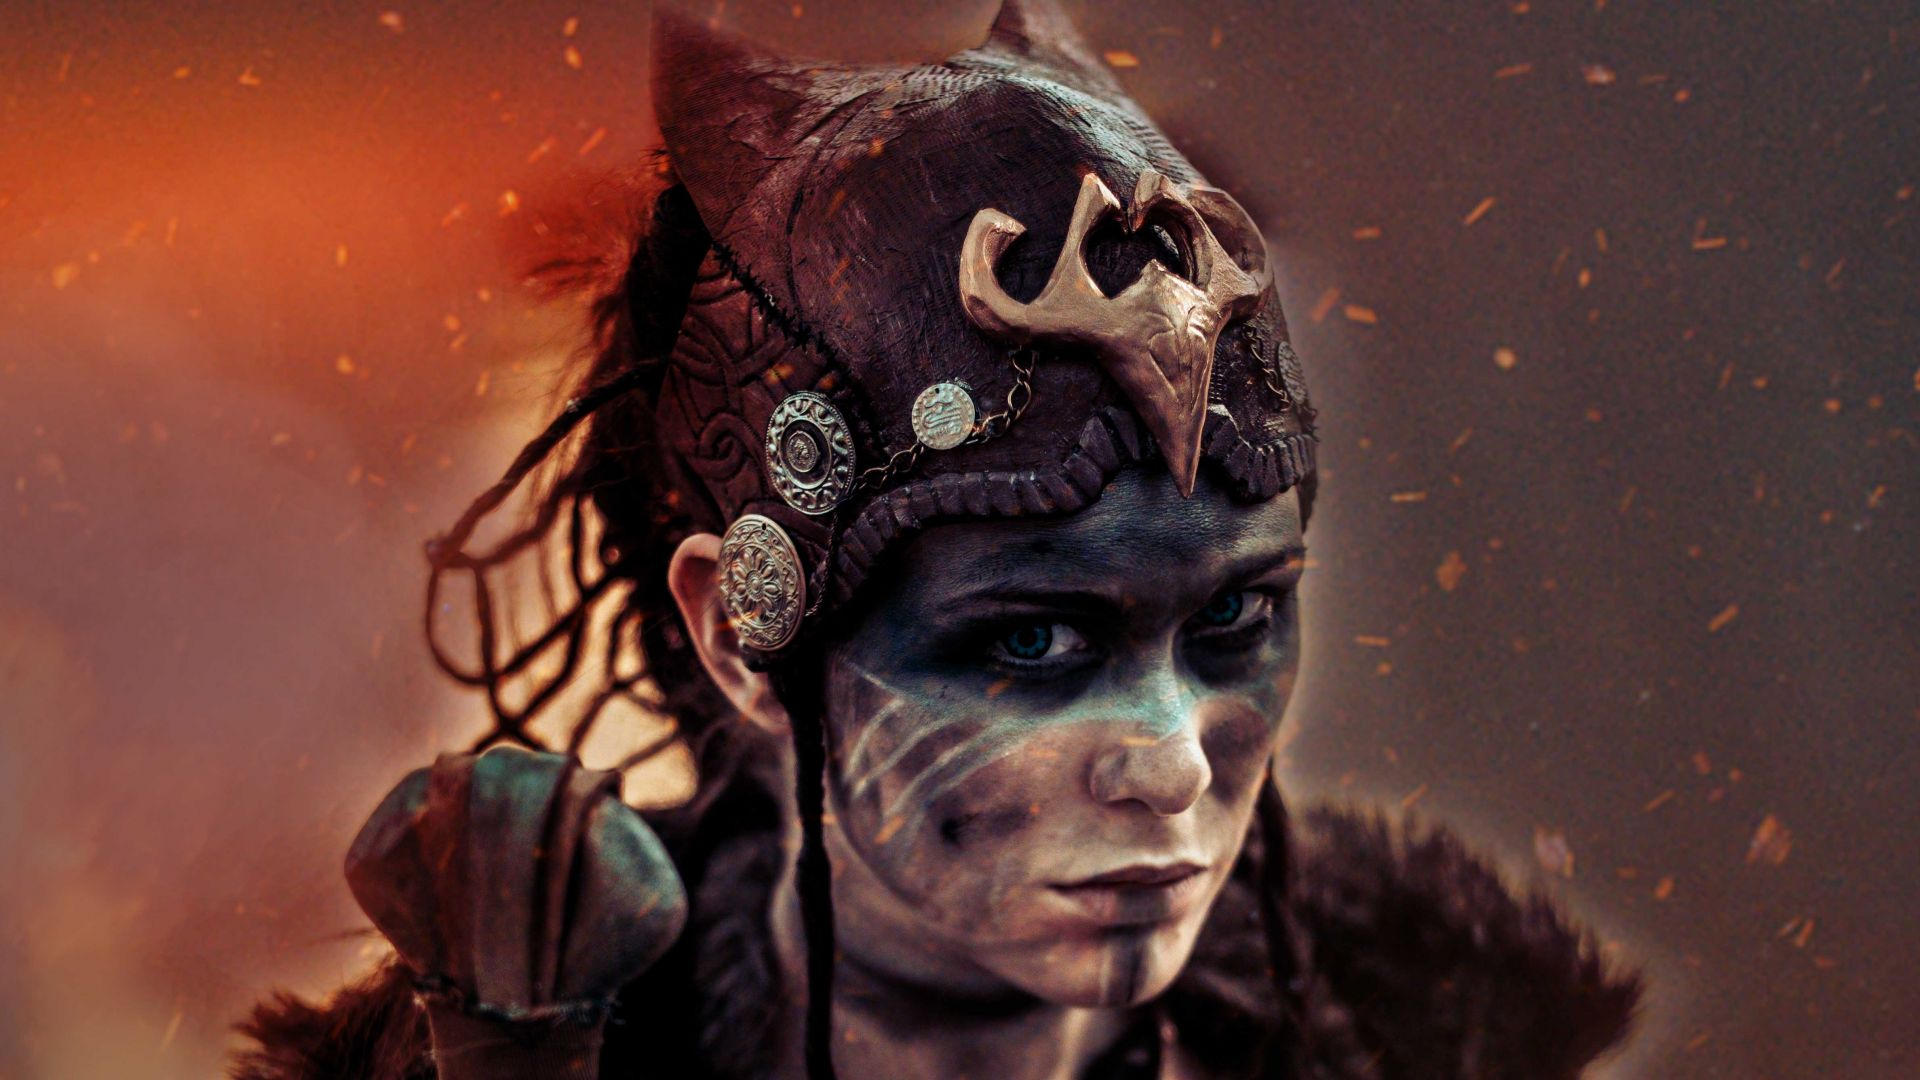 Hellblade, Сенуа, Лучшие игры, фентези, ПК, игра, PC, PS4, Hellblade, Senua, Best games, fantasy, PC, PS4, game (horizontal)